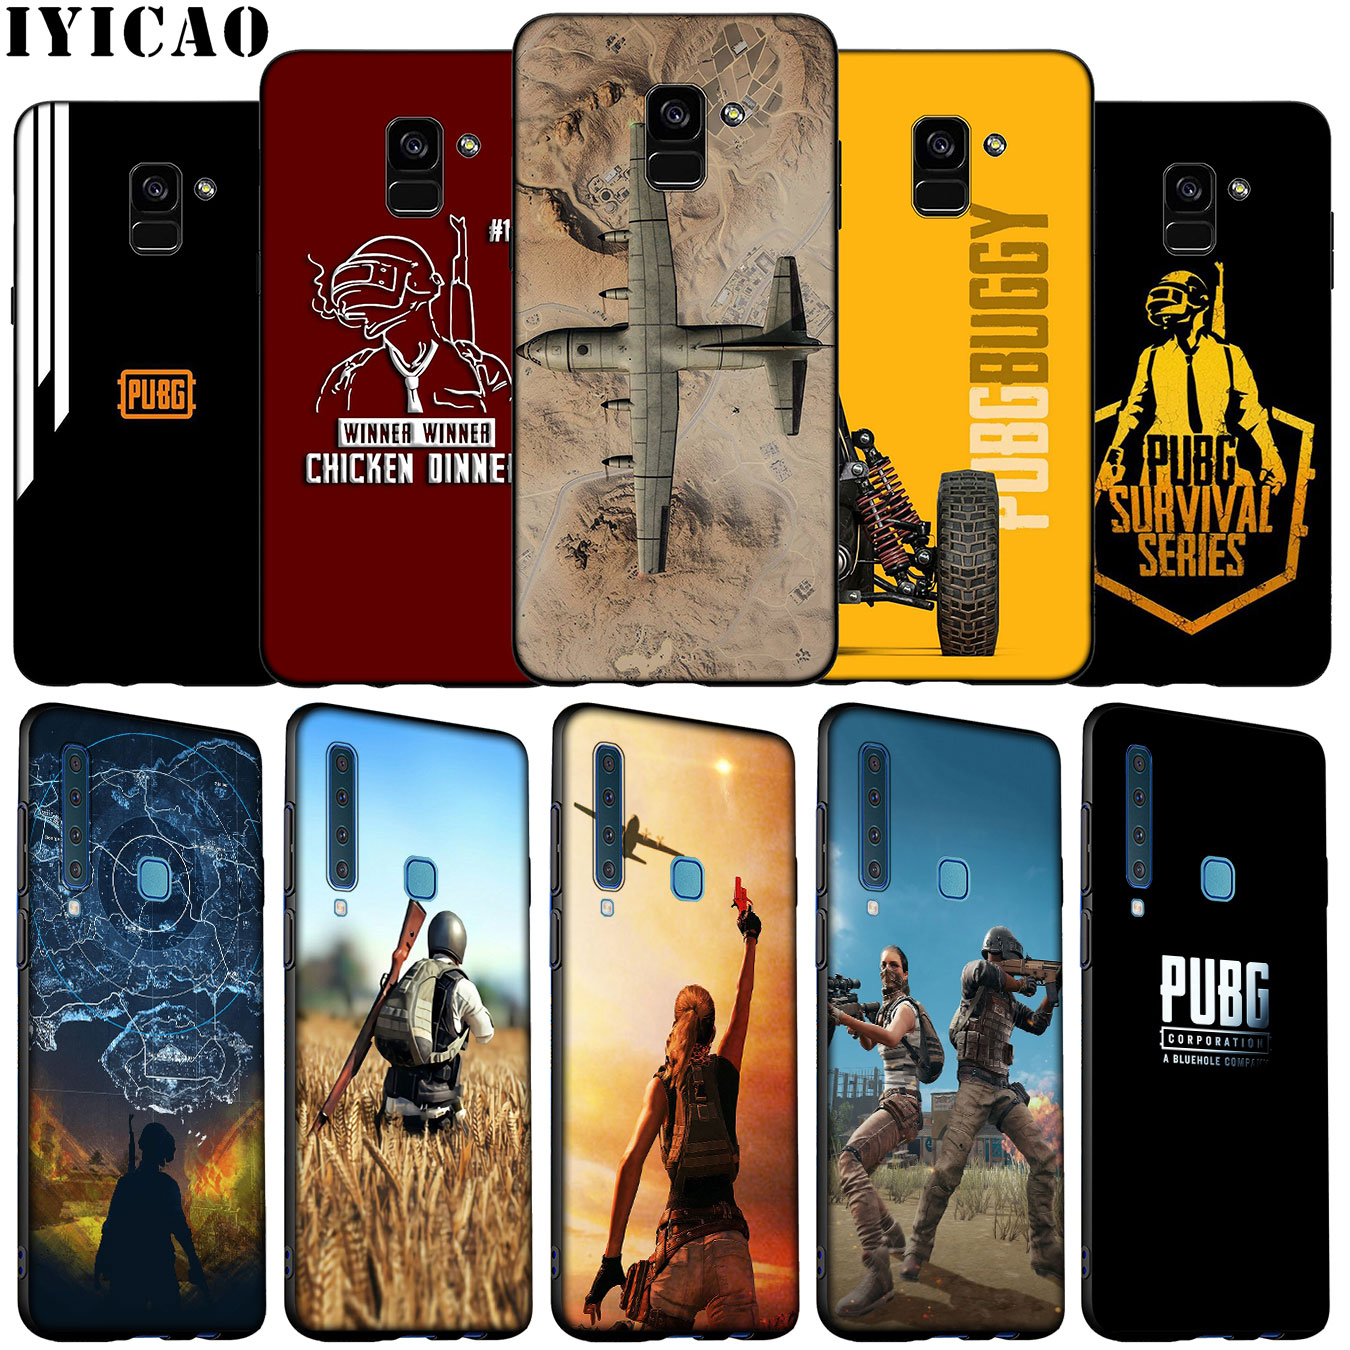 PUBG Game Soft Silicone Phone Case for Samsung Galaxy A6 Plus A9 A8 A7 2018 A3 A5 2016 2017 Note 9 8 10 Cover image